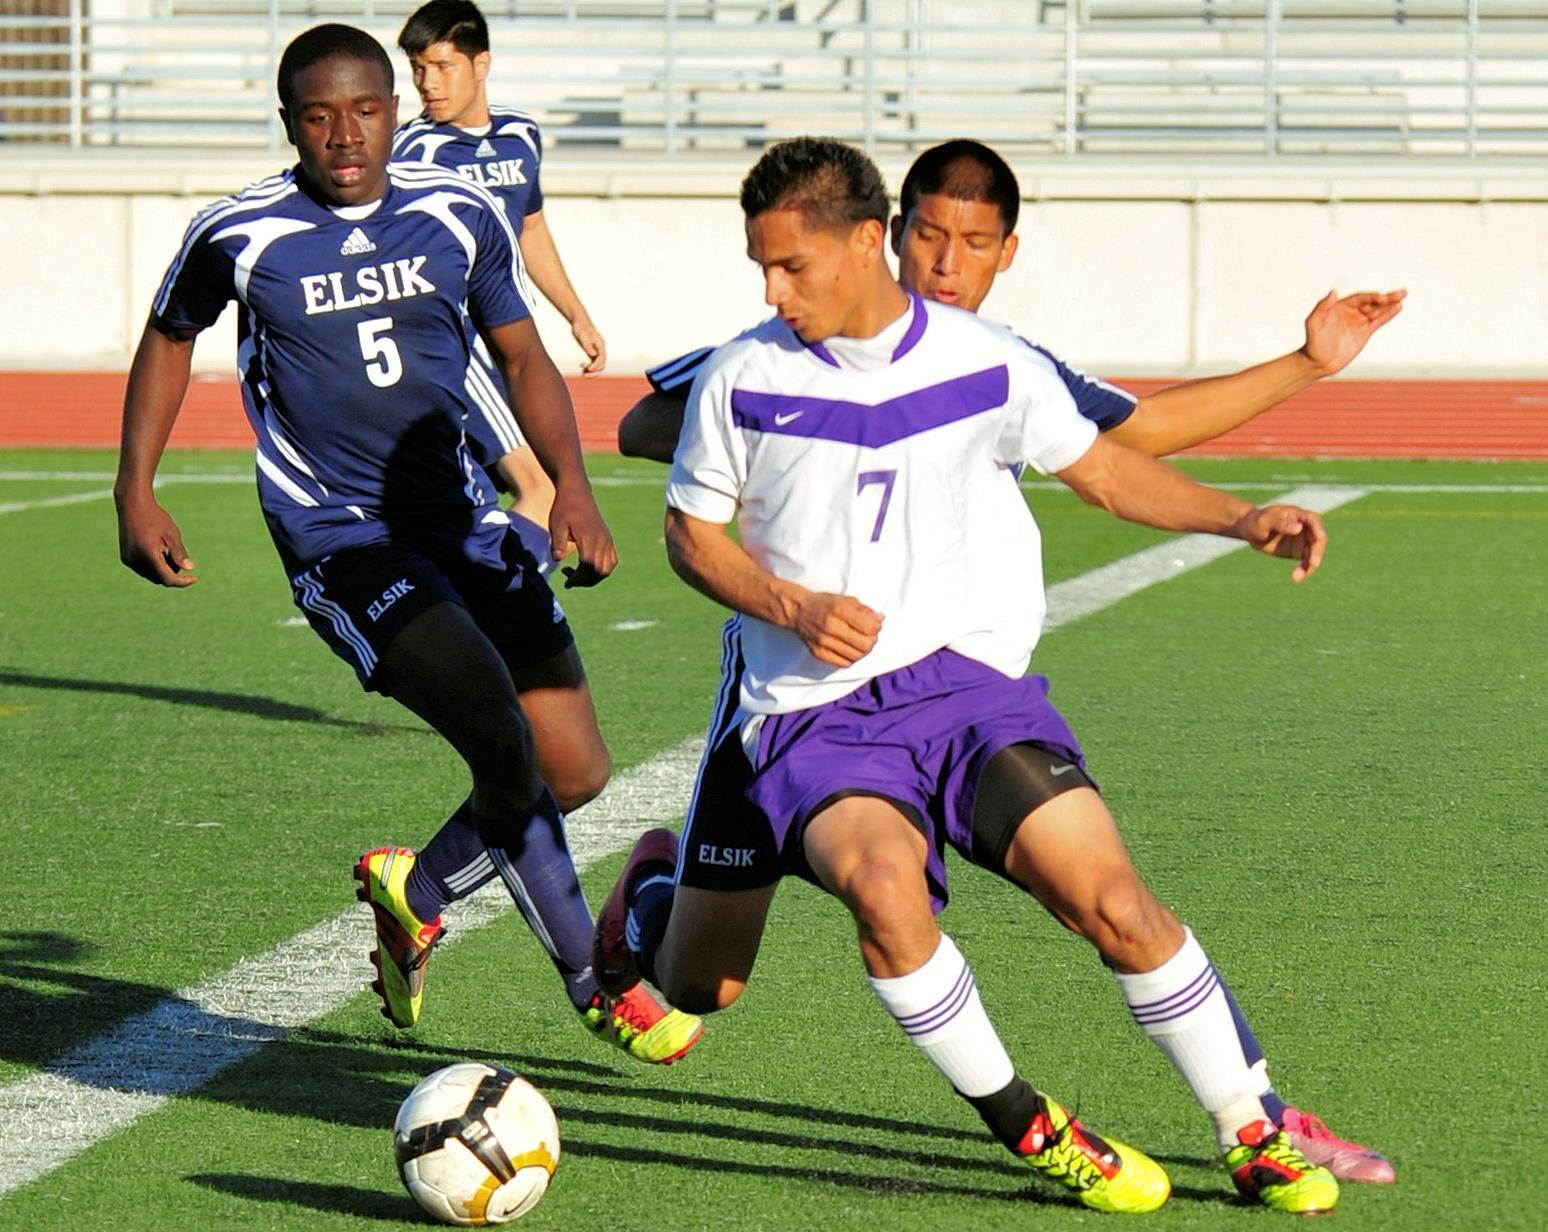 Boys Soccer: Humble pushing for its third-straight playoff berth